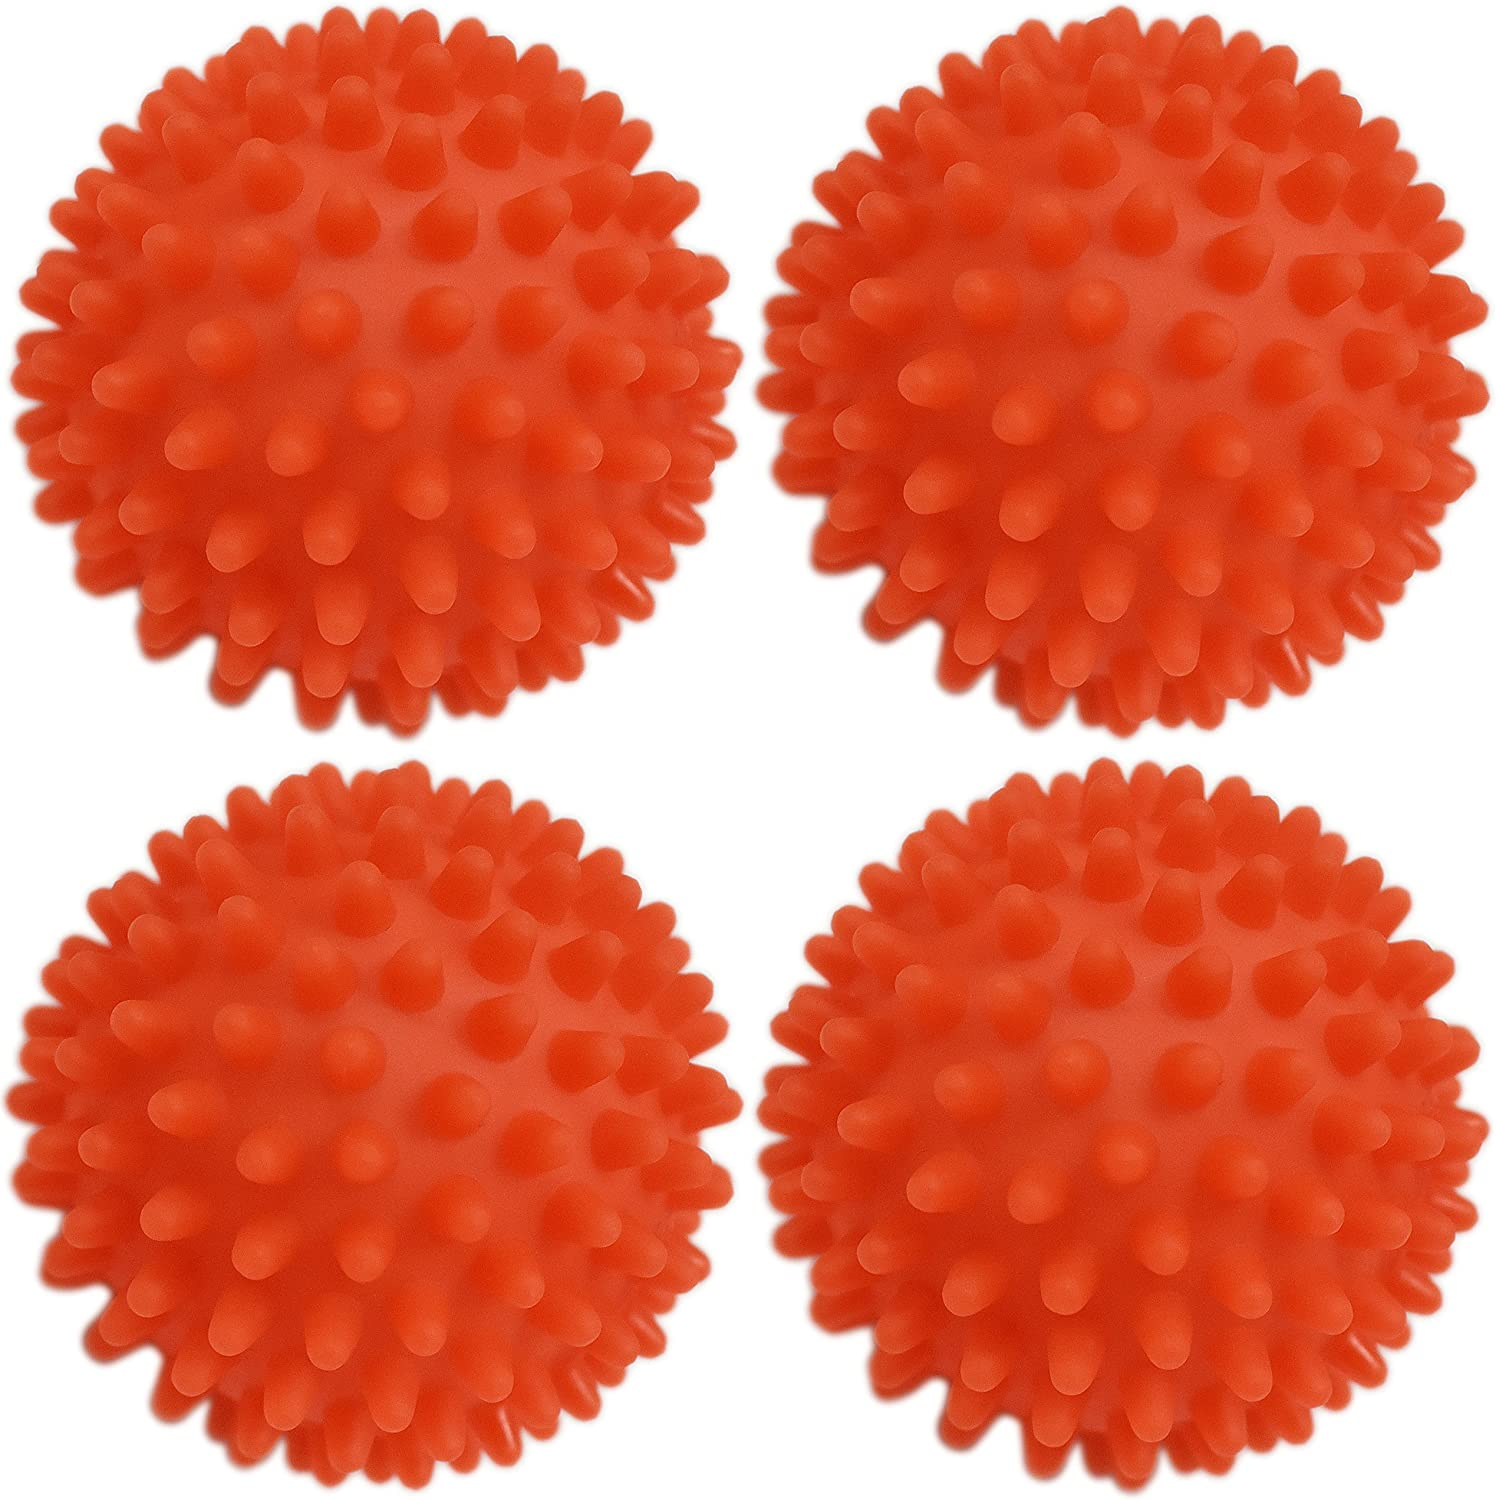 Black Duck Brand Dryer Balls 4 Pack Orange- Reusable Dryer Balls Replace Laundry Drying Fabric Softener and Saves You Money